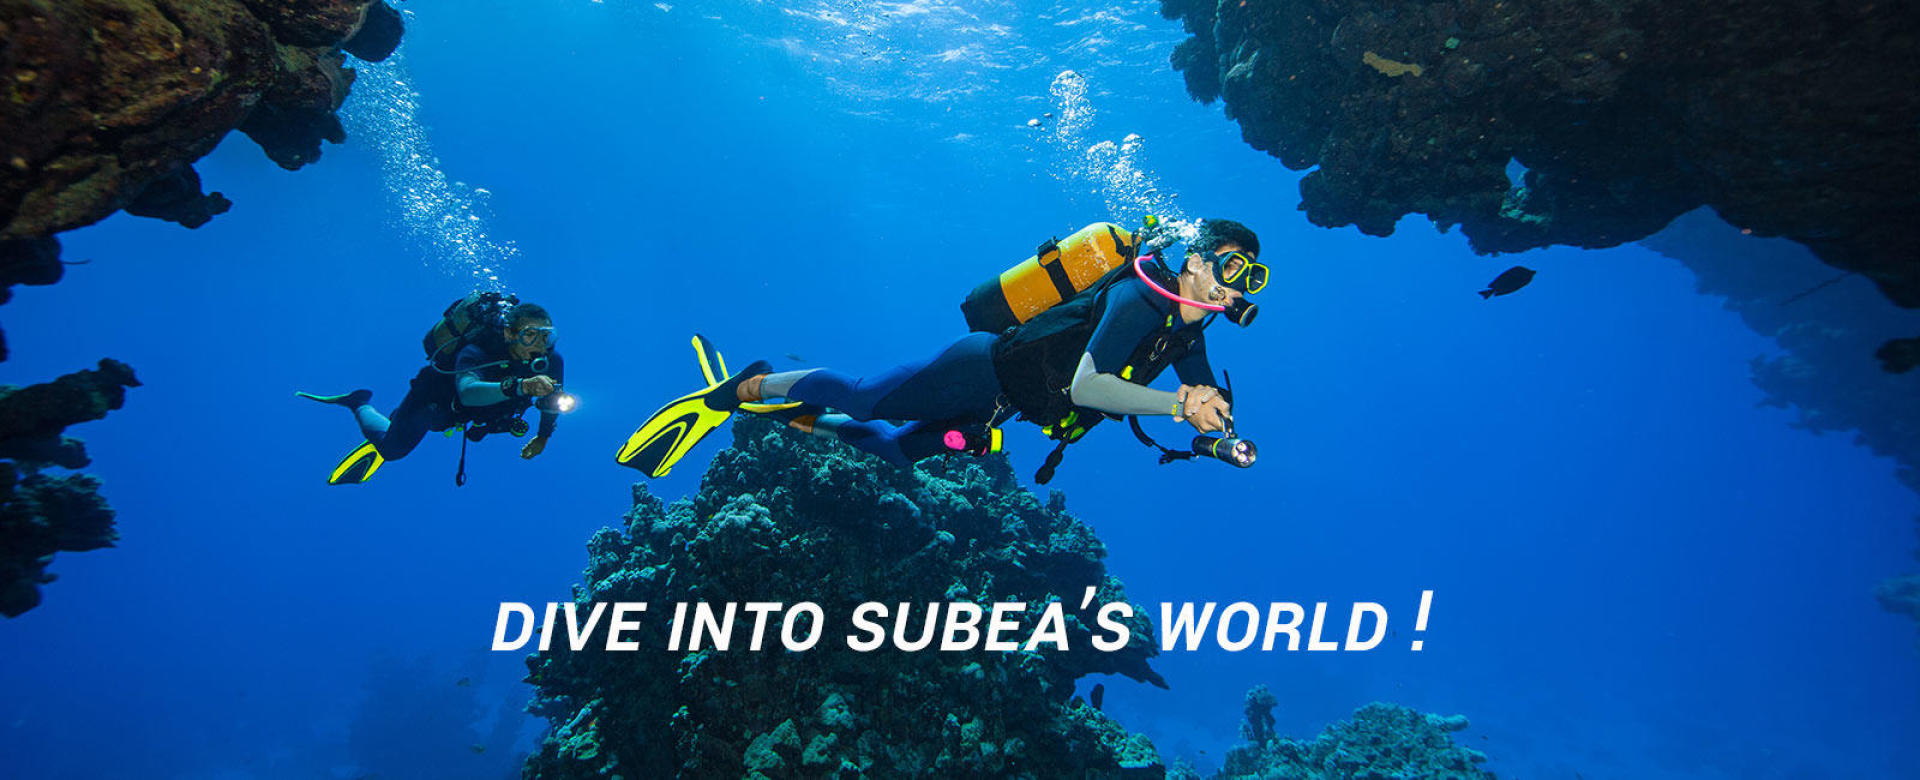 scuba diving subea